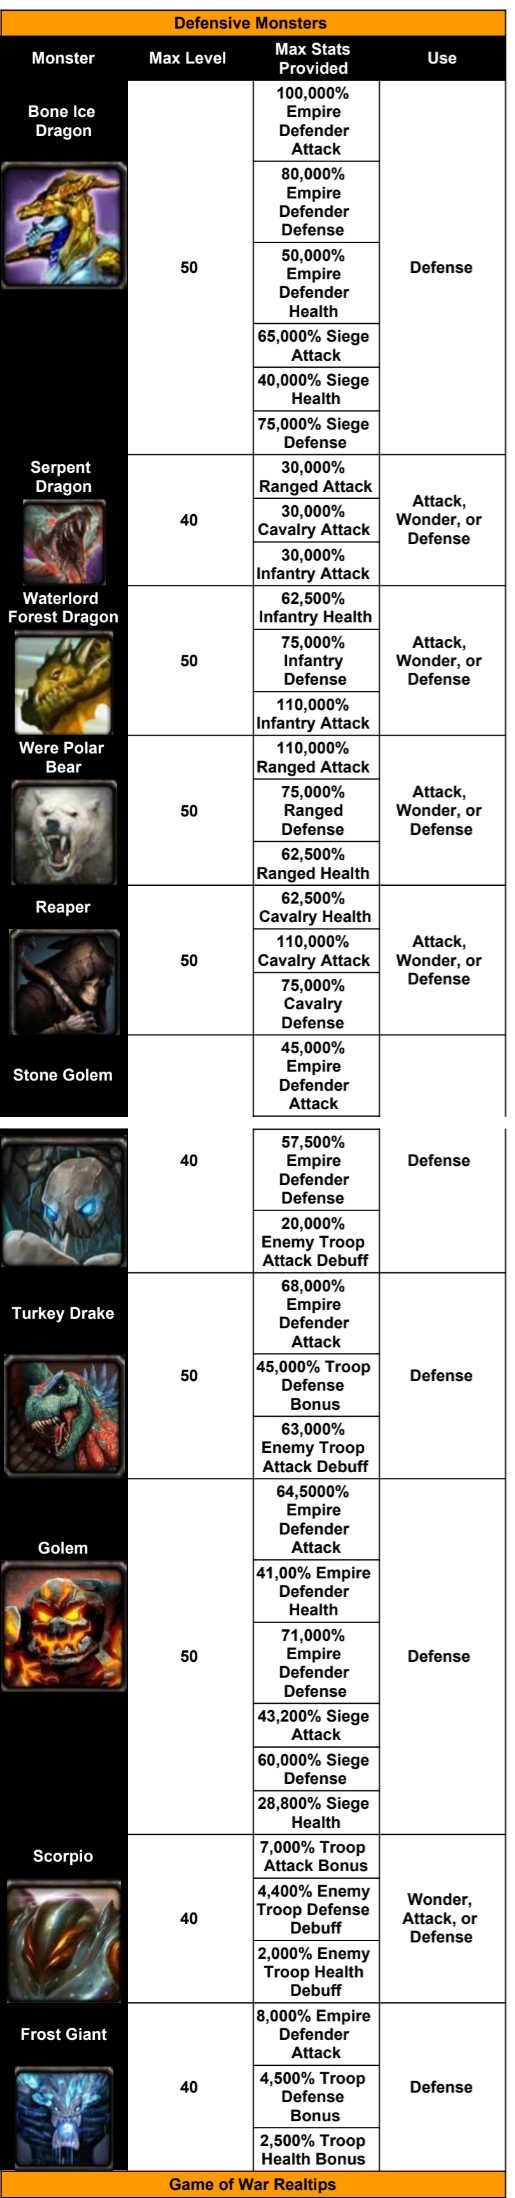 Game of War Monsters